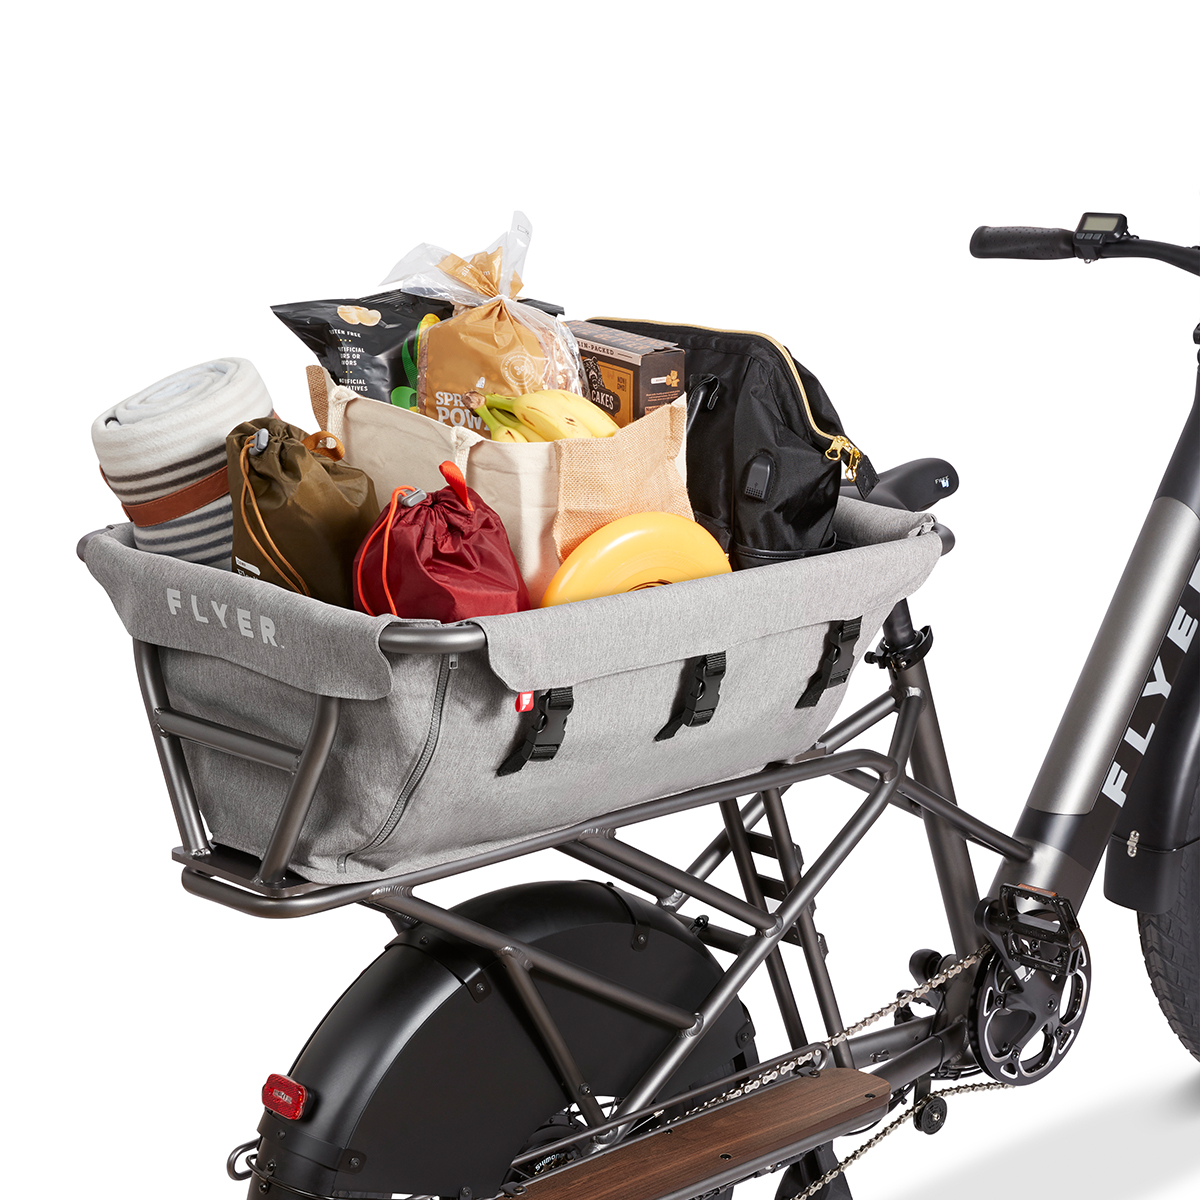 Kid & Cargo Carrier on Flyer L885 eBike filled with groceries and other essentials